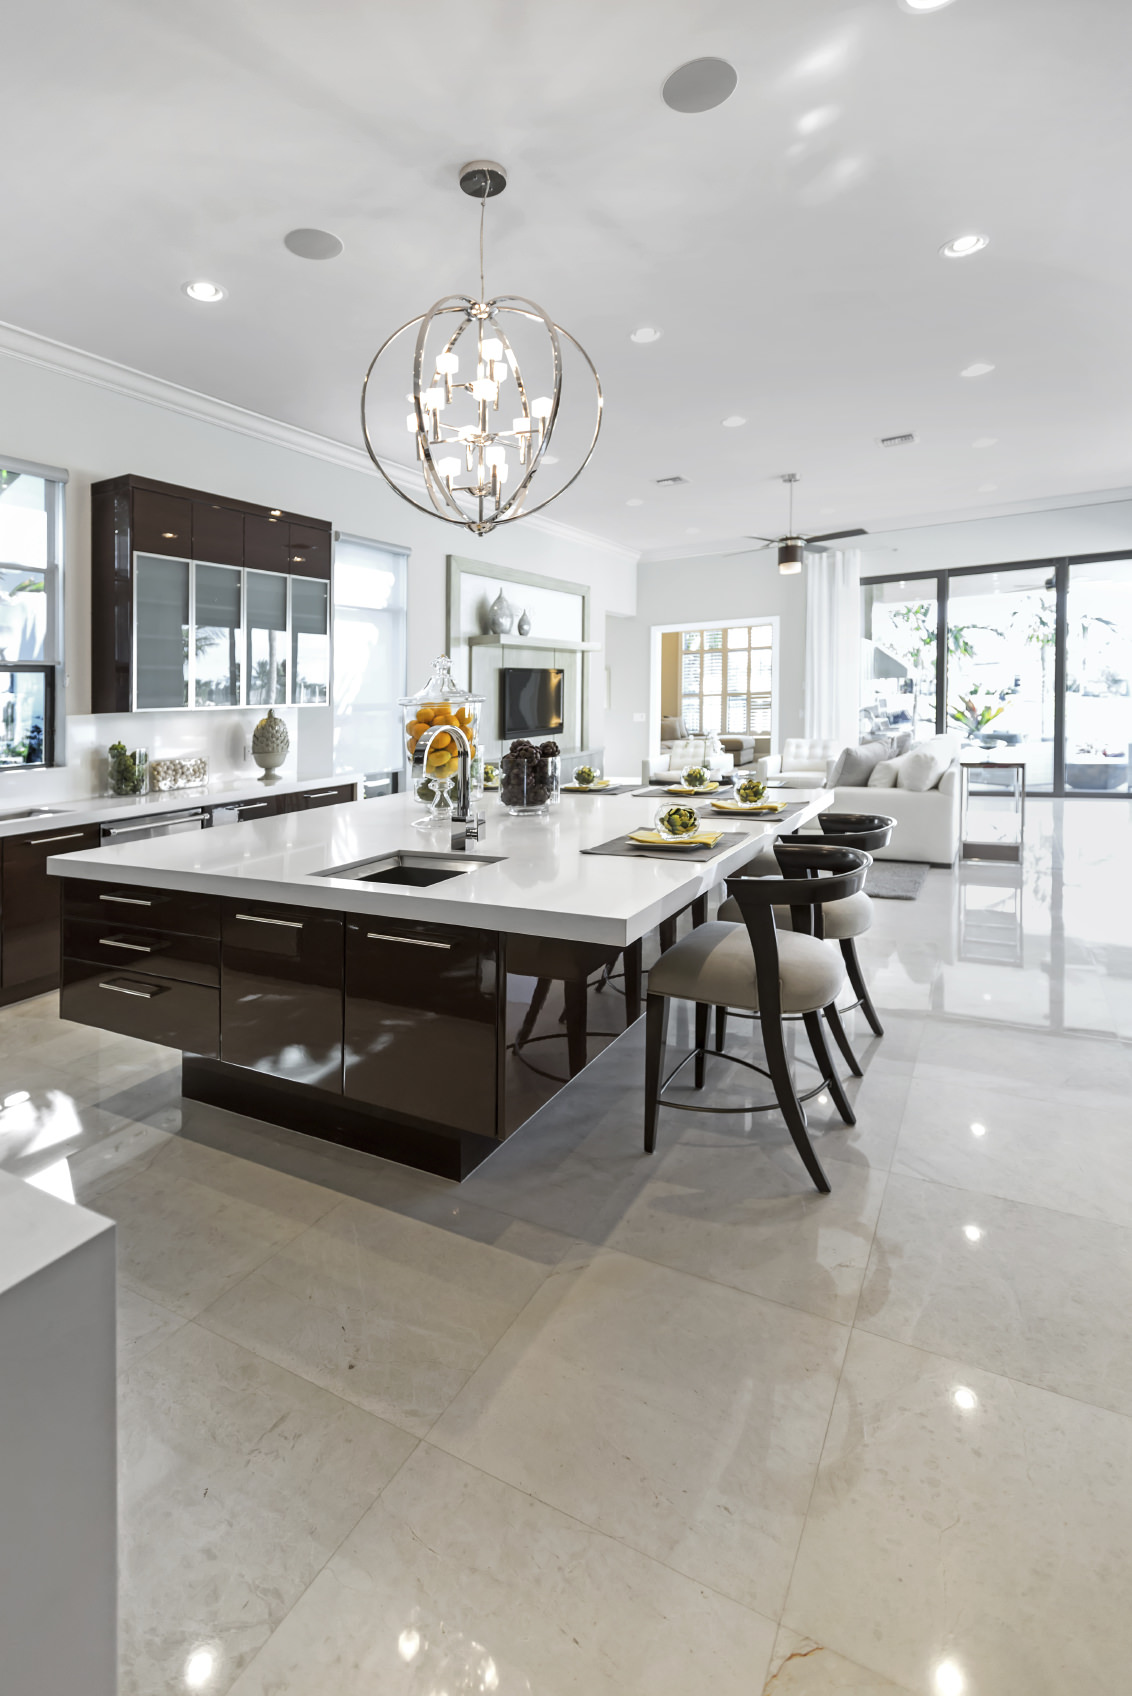 A modish kitchen set featuring white walls and chocolate brown details are so beautiful to look at, but the main attraction here is the gigantic center island featuring a captivating smooth white countertop lighted by a beautiful ceiling light.